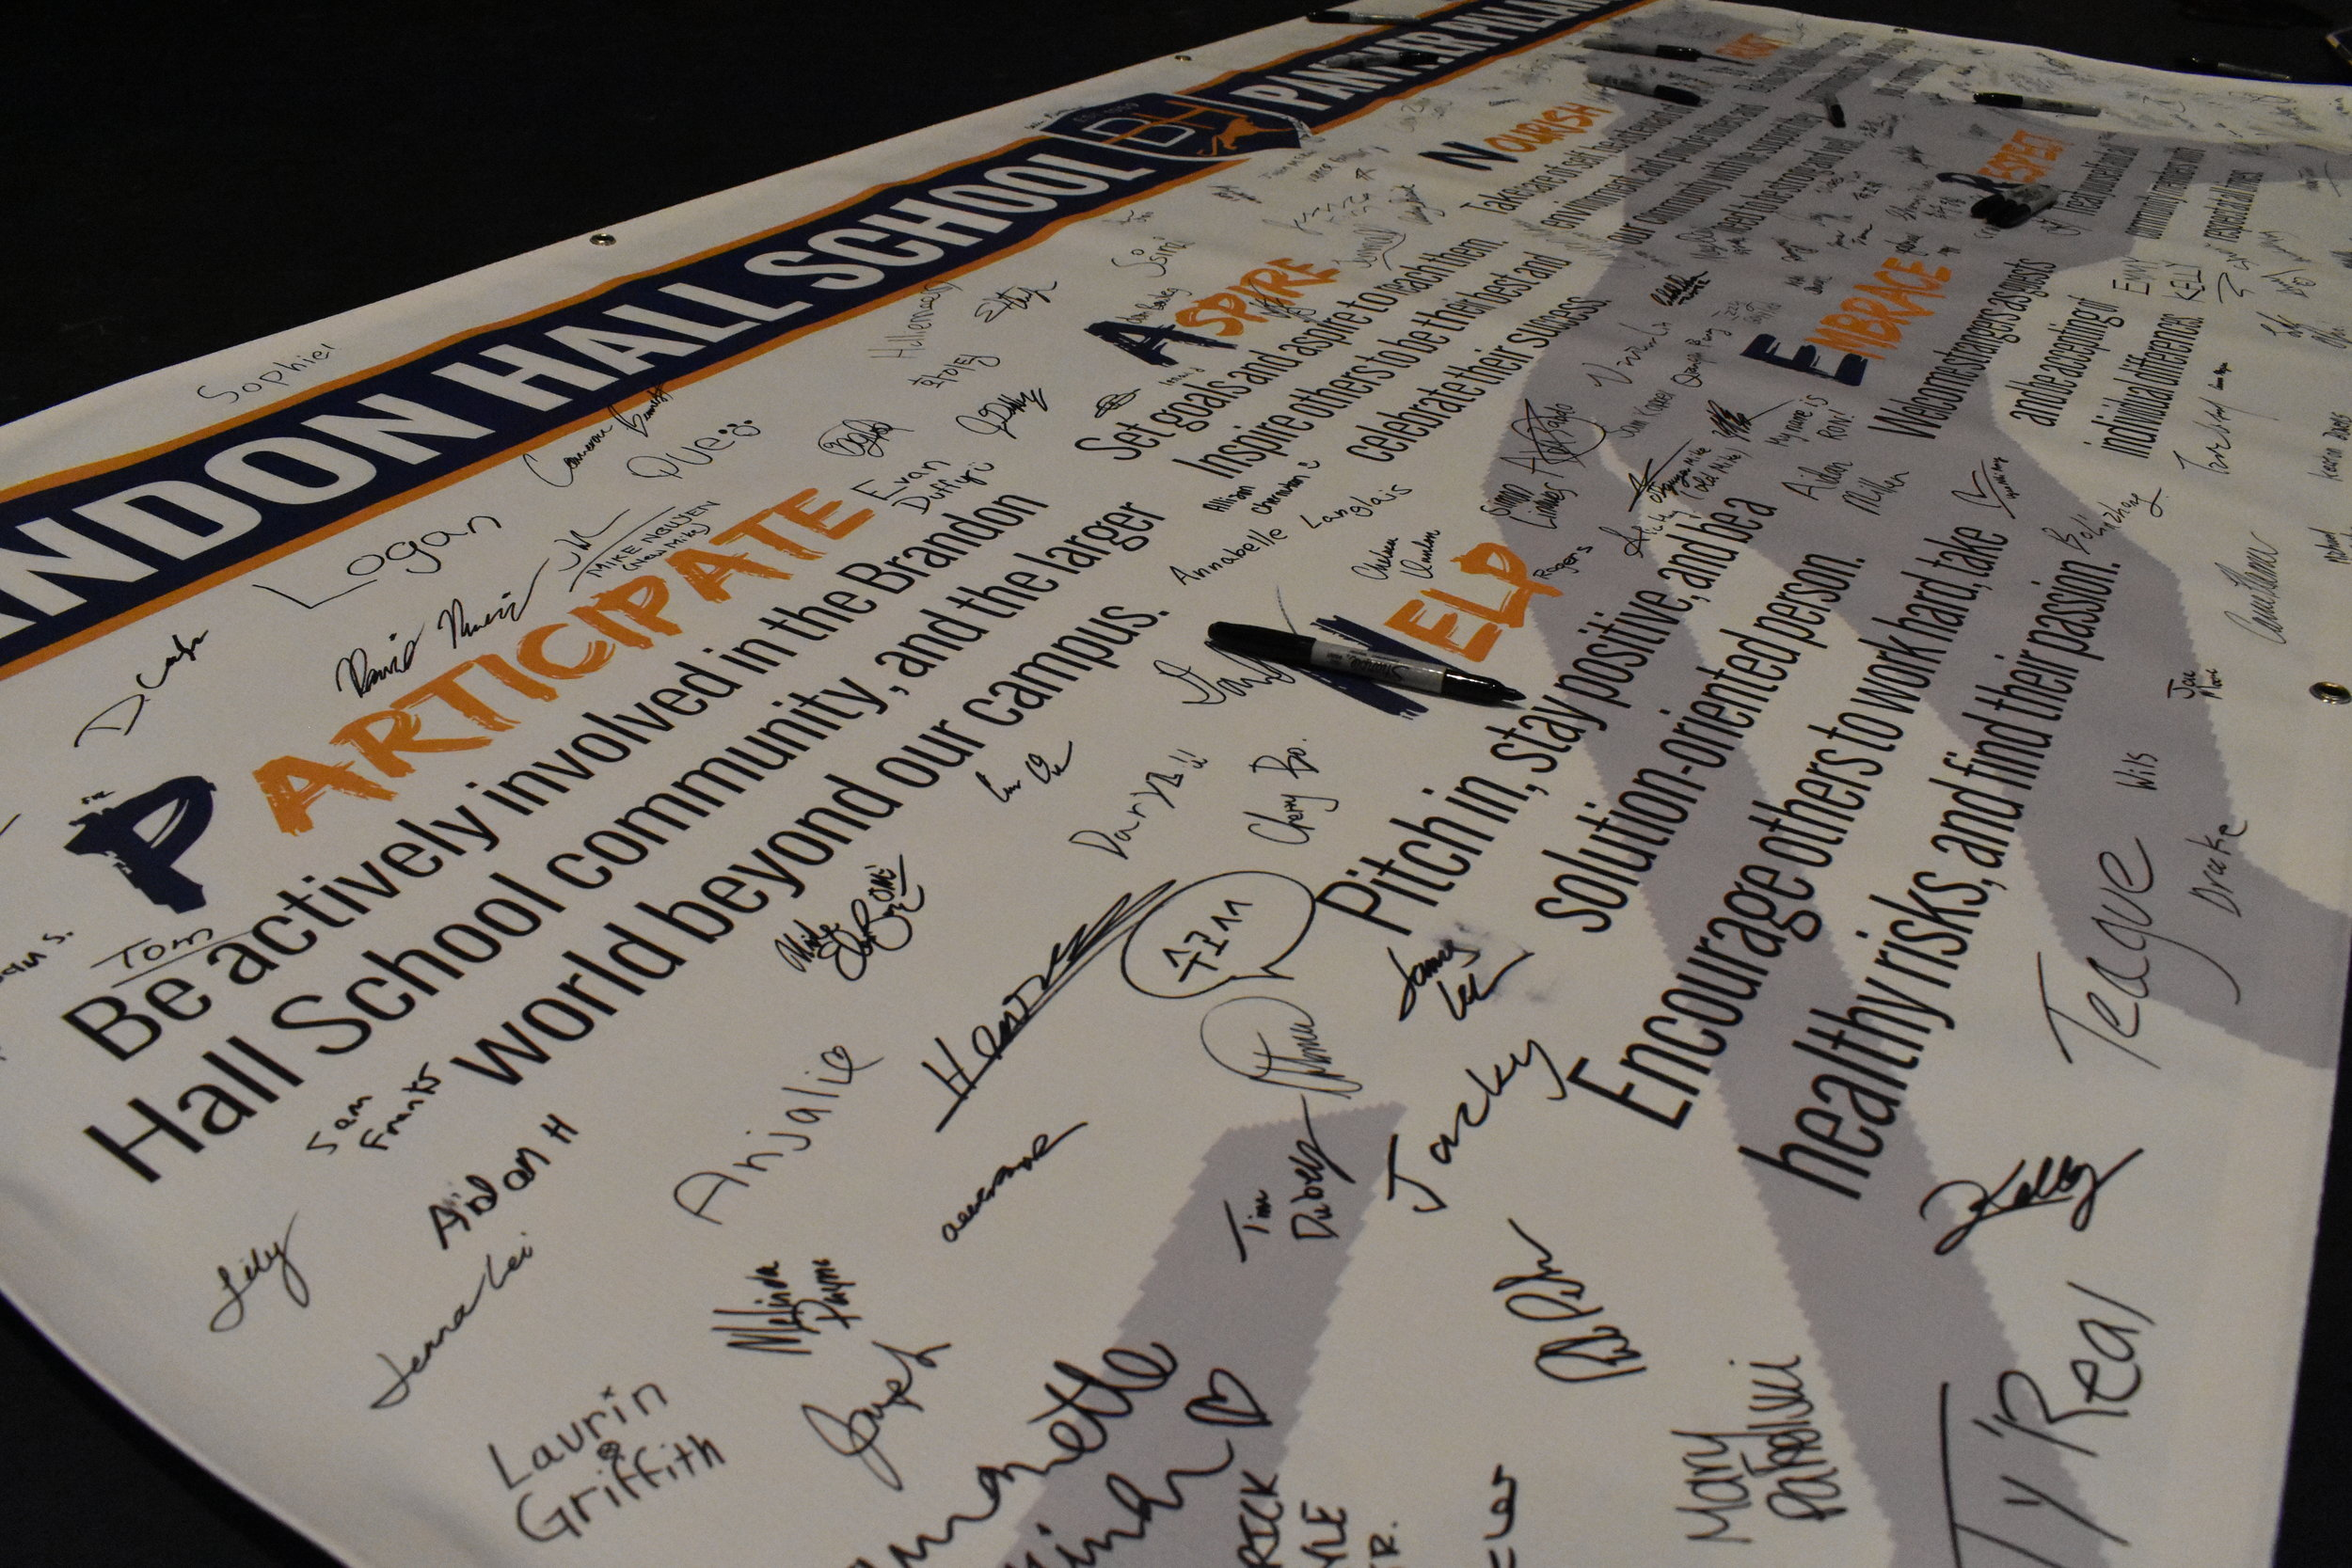 Signing of the Pillars - During the first assembly of the school year, the Brandon Hall community signs the Panther Pillars banner, signifying their dedication to uphold the Pillars in all that they do.